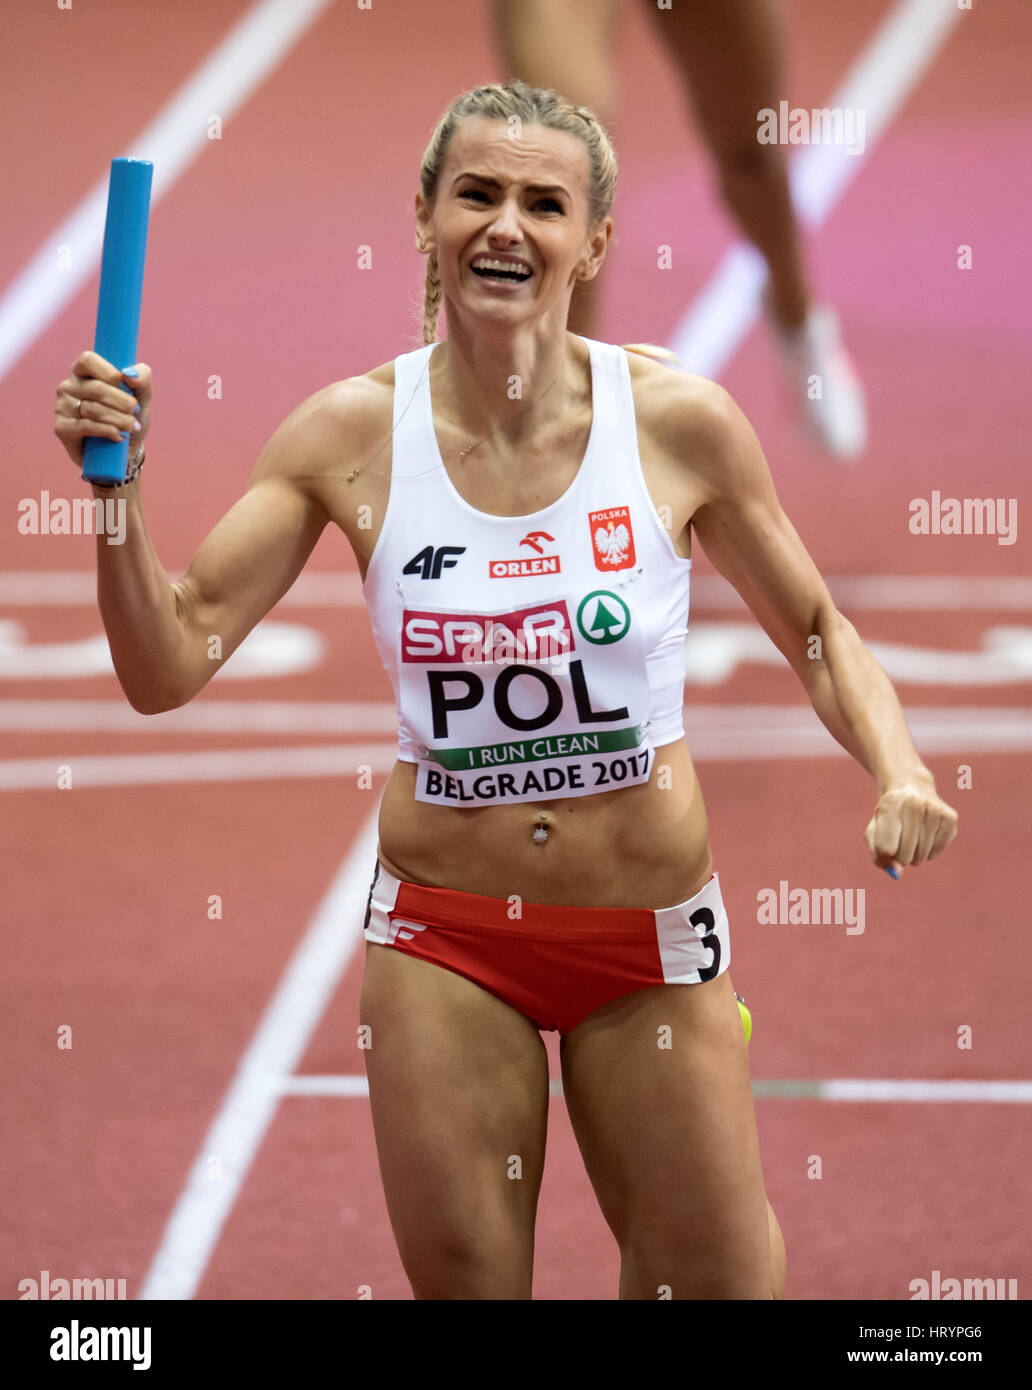 Belgrade, Serbia. 05th Mar, 2017. Justyna Swiety from Poland at the finish line in the 4x400m relay event at the - Stock Image